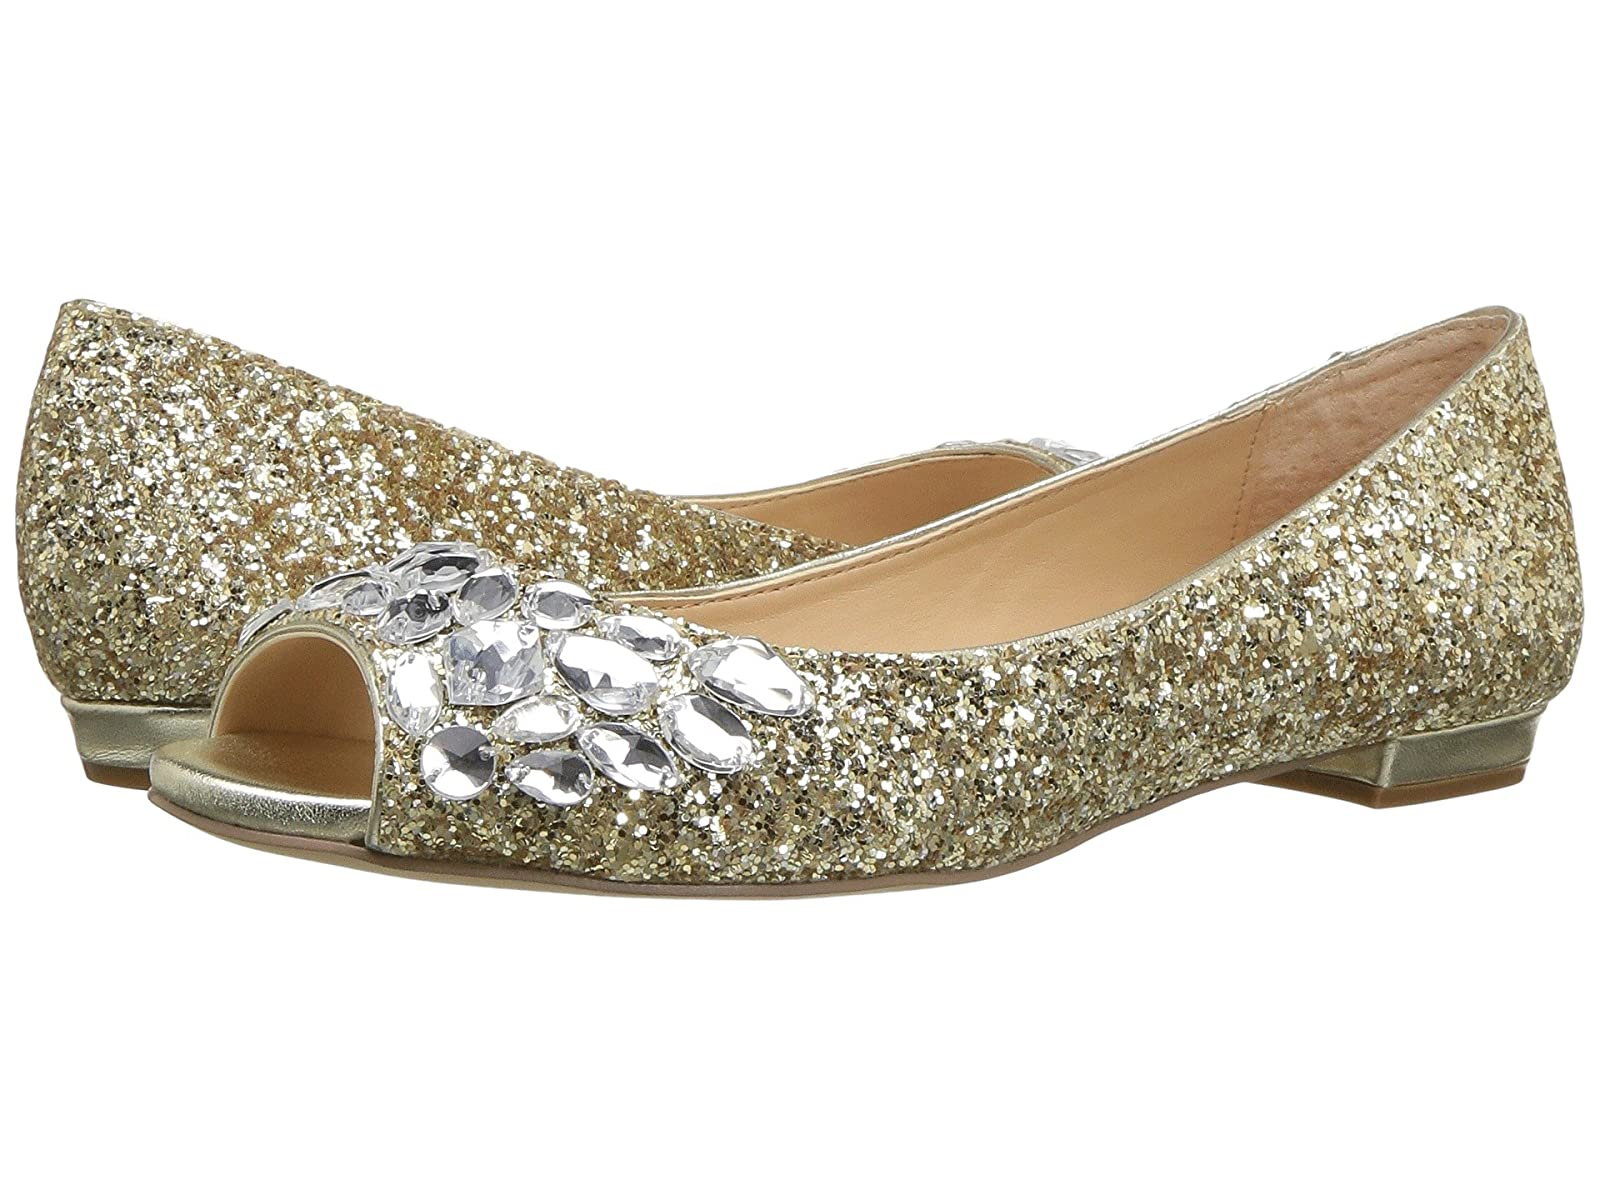 Jewel Badgley Mischka ClaireCheap and distinctive eye-catching shoes